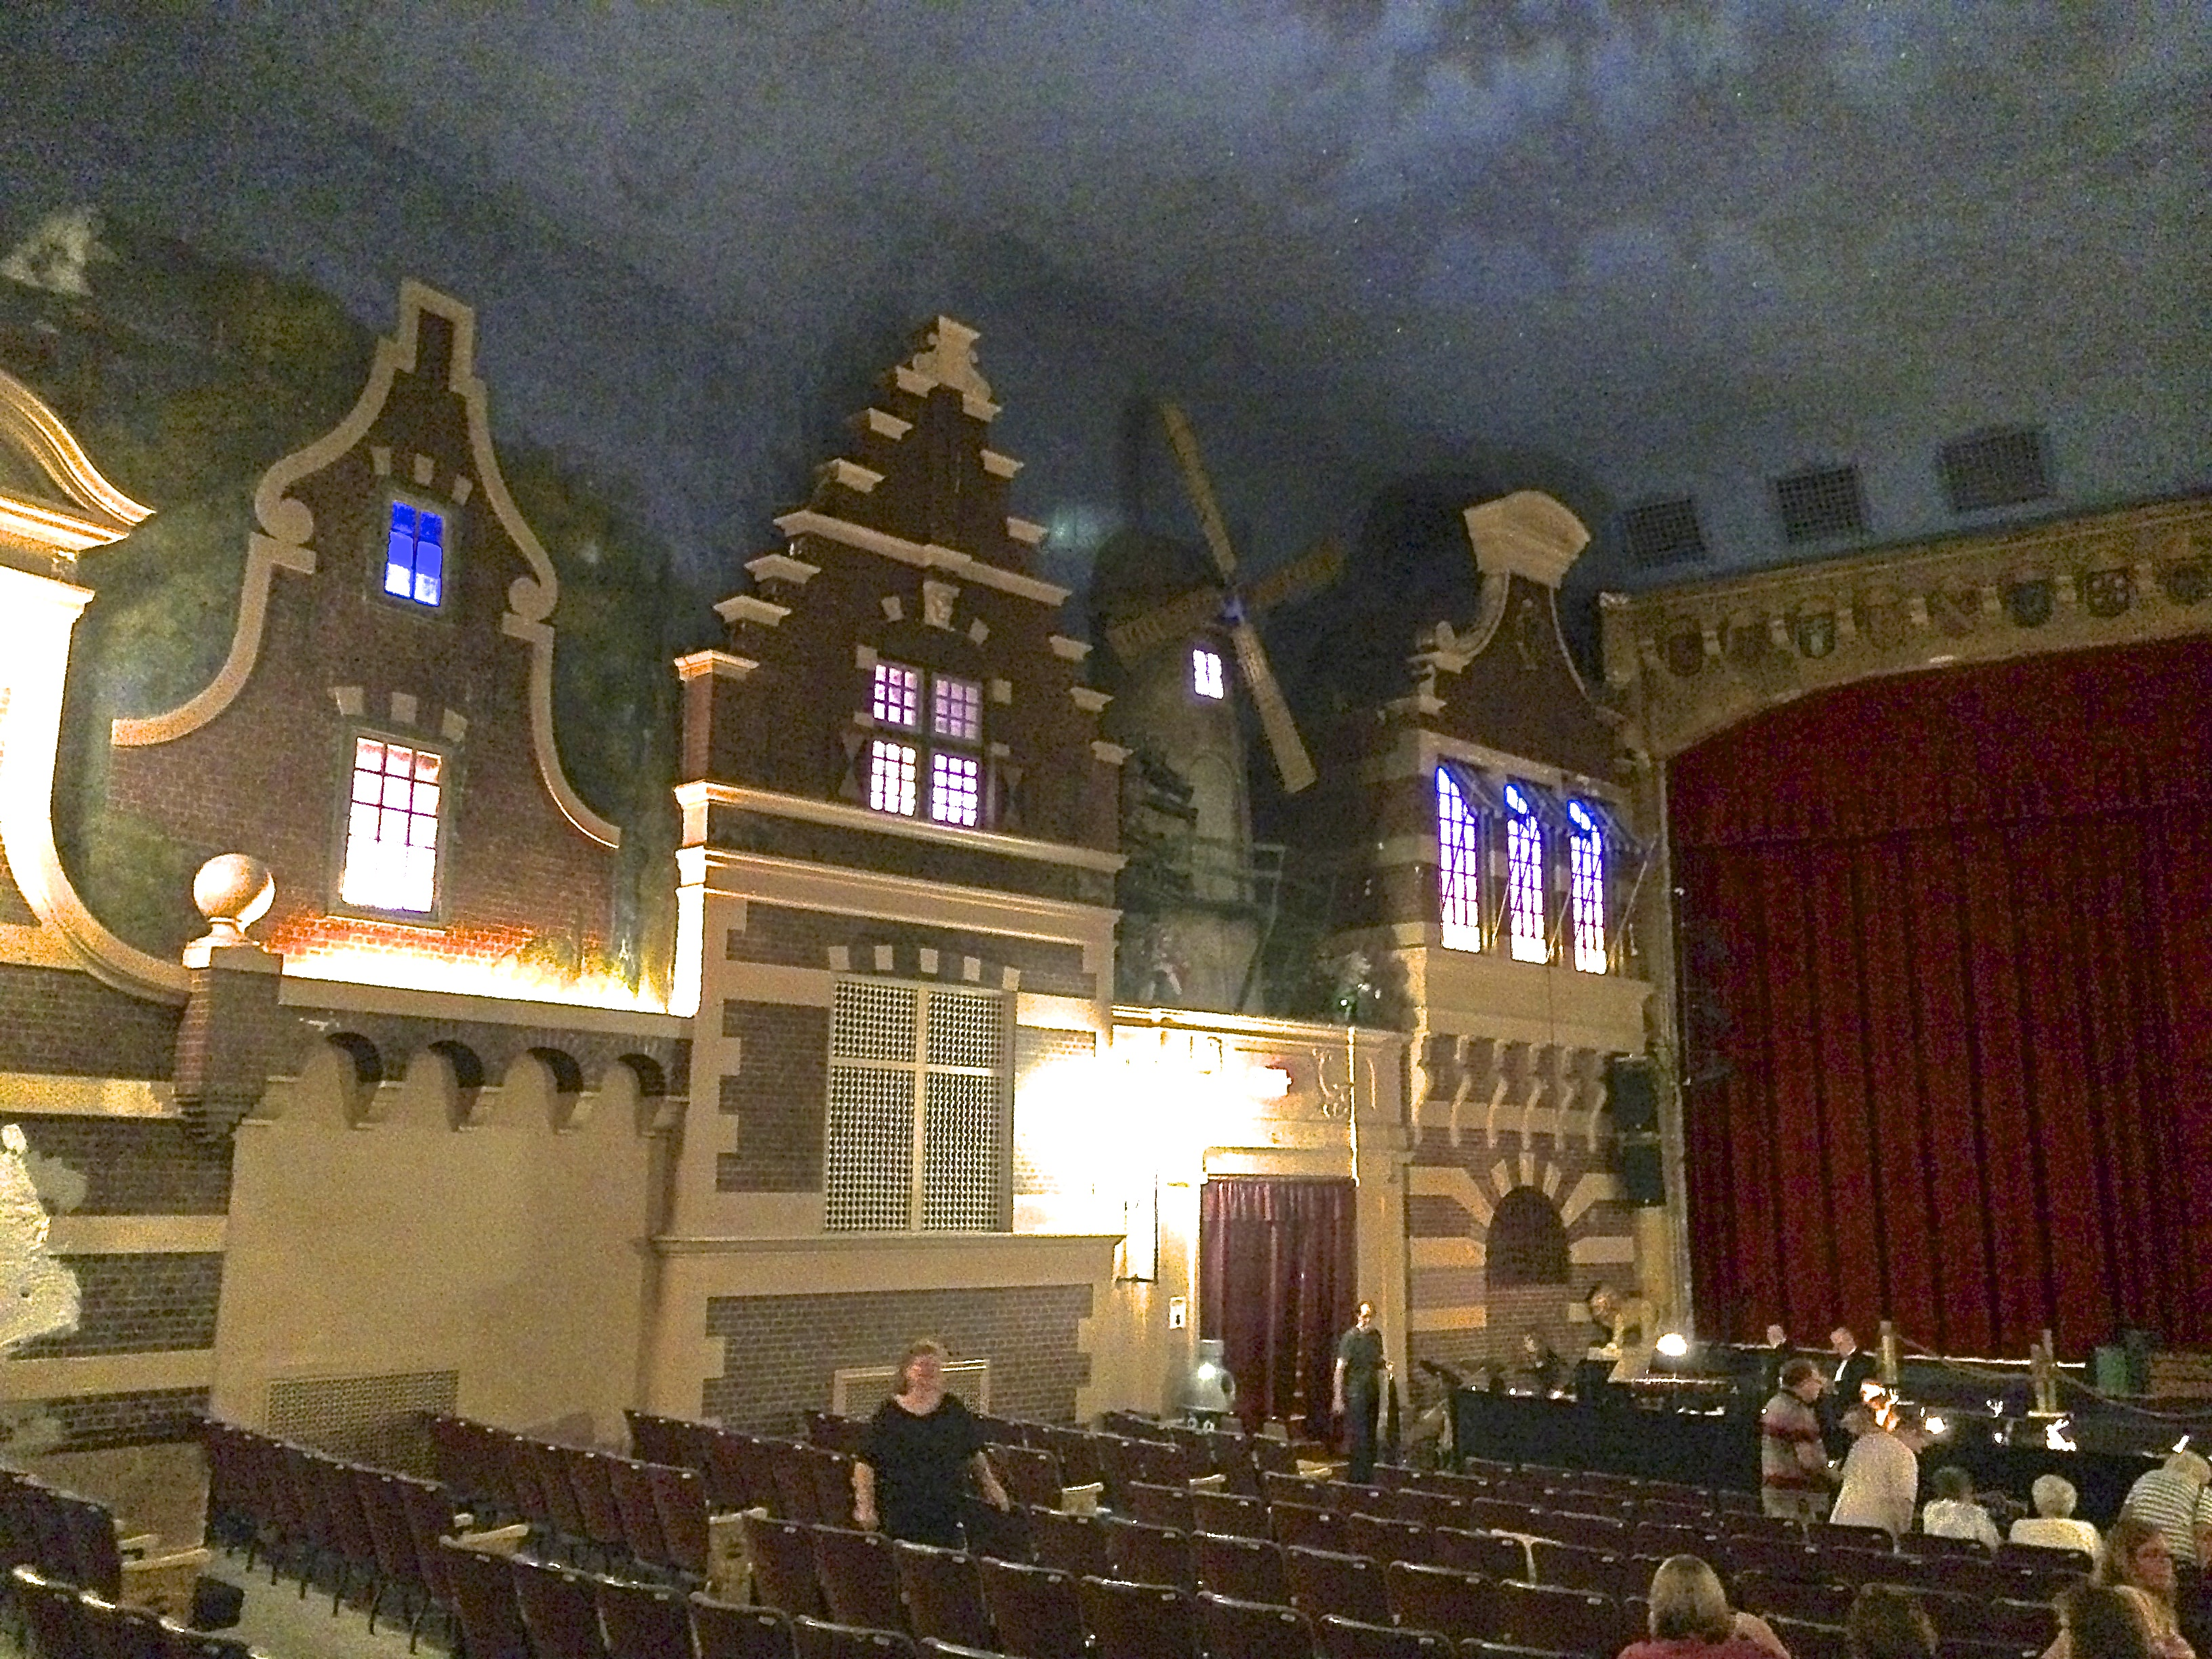 Holland Theater